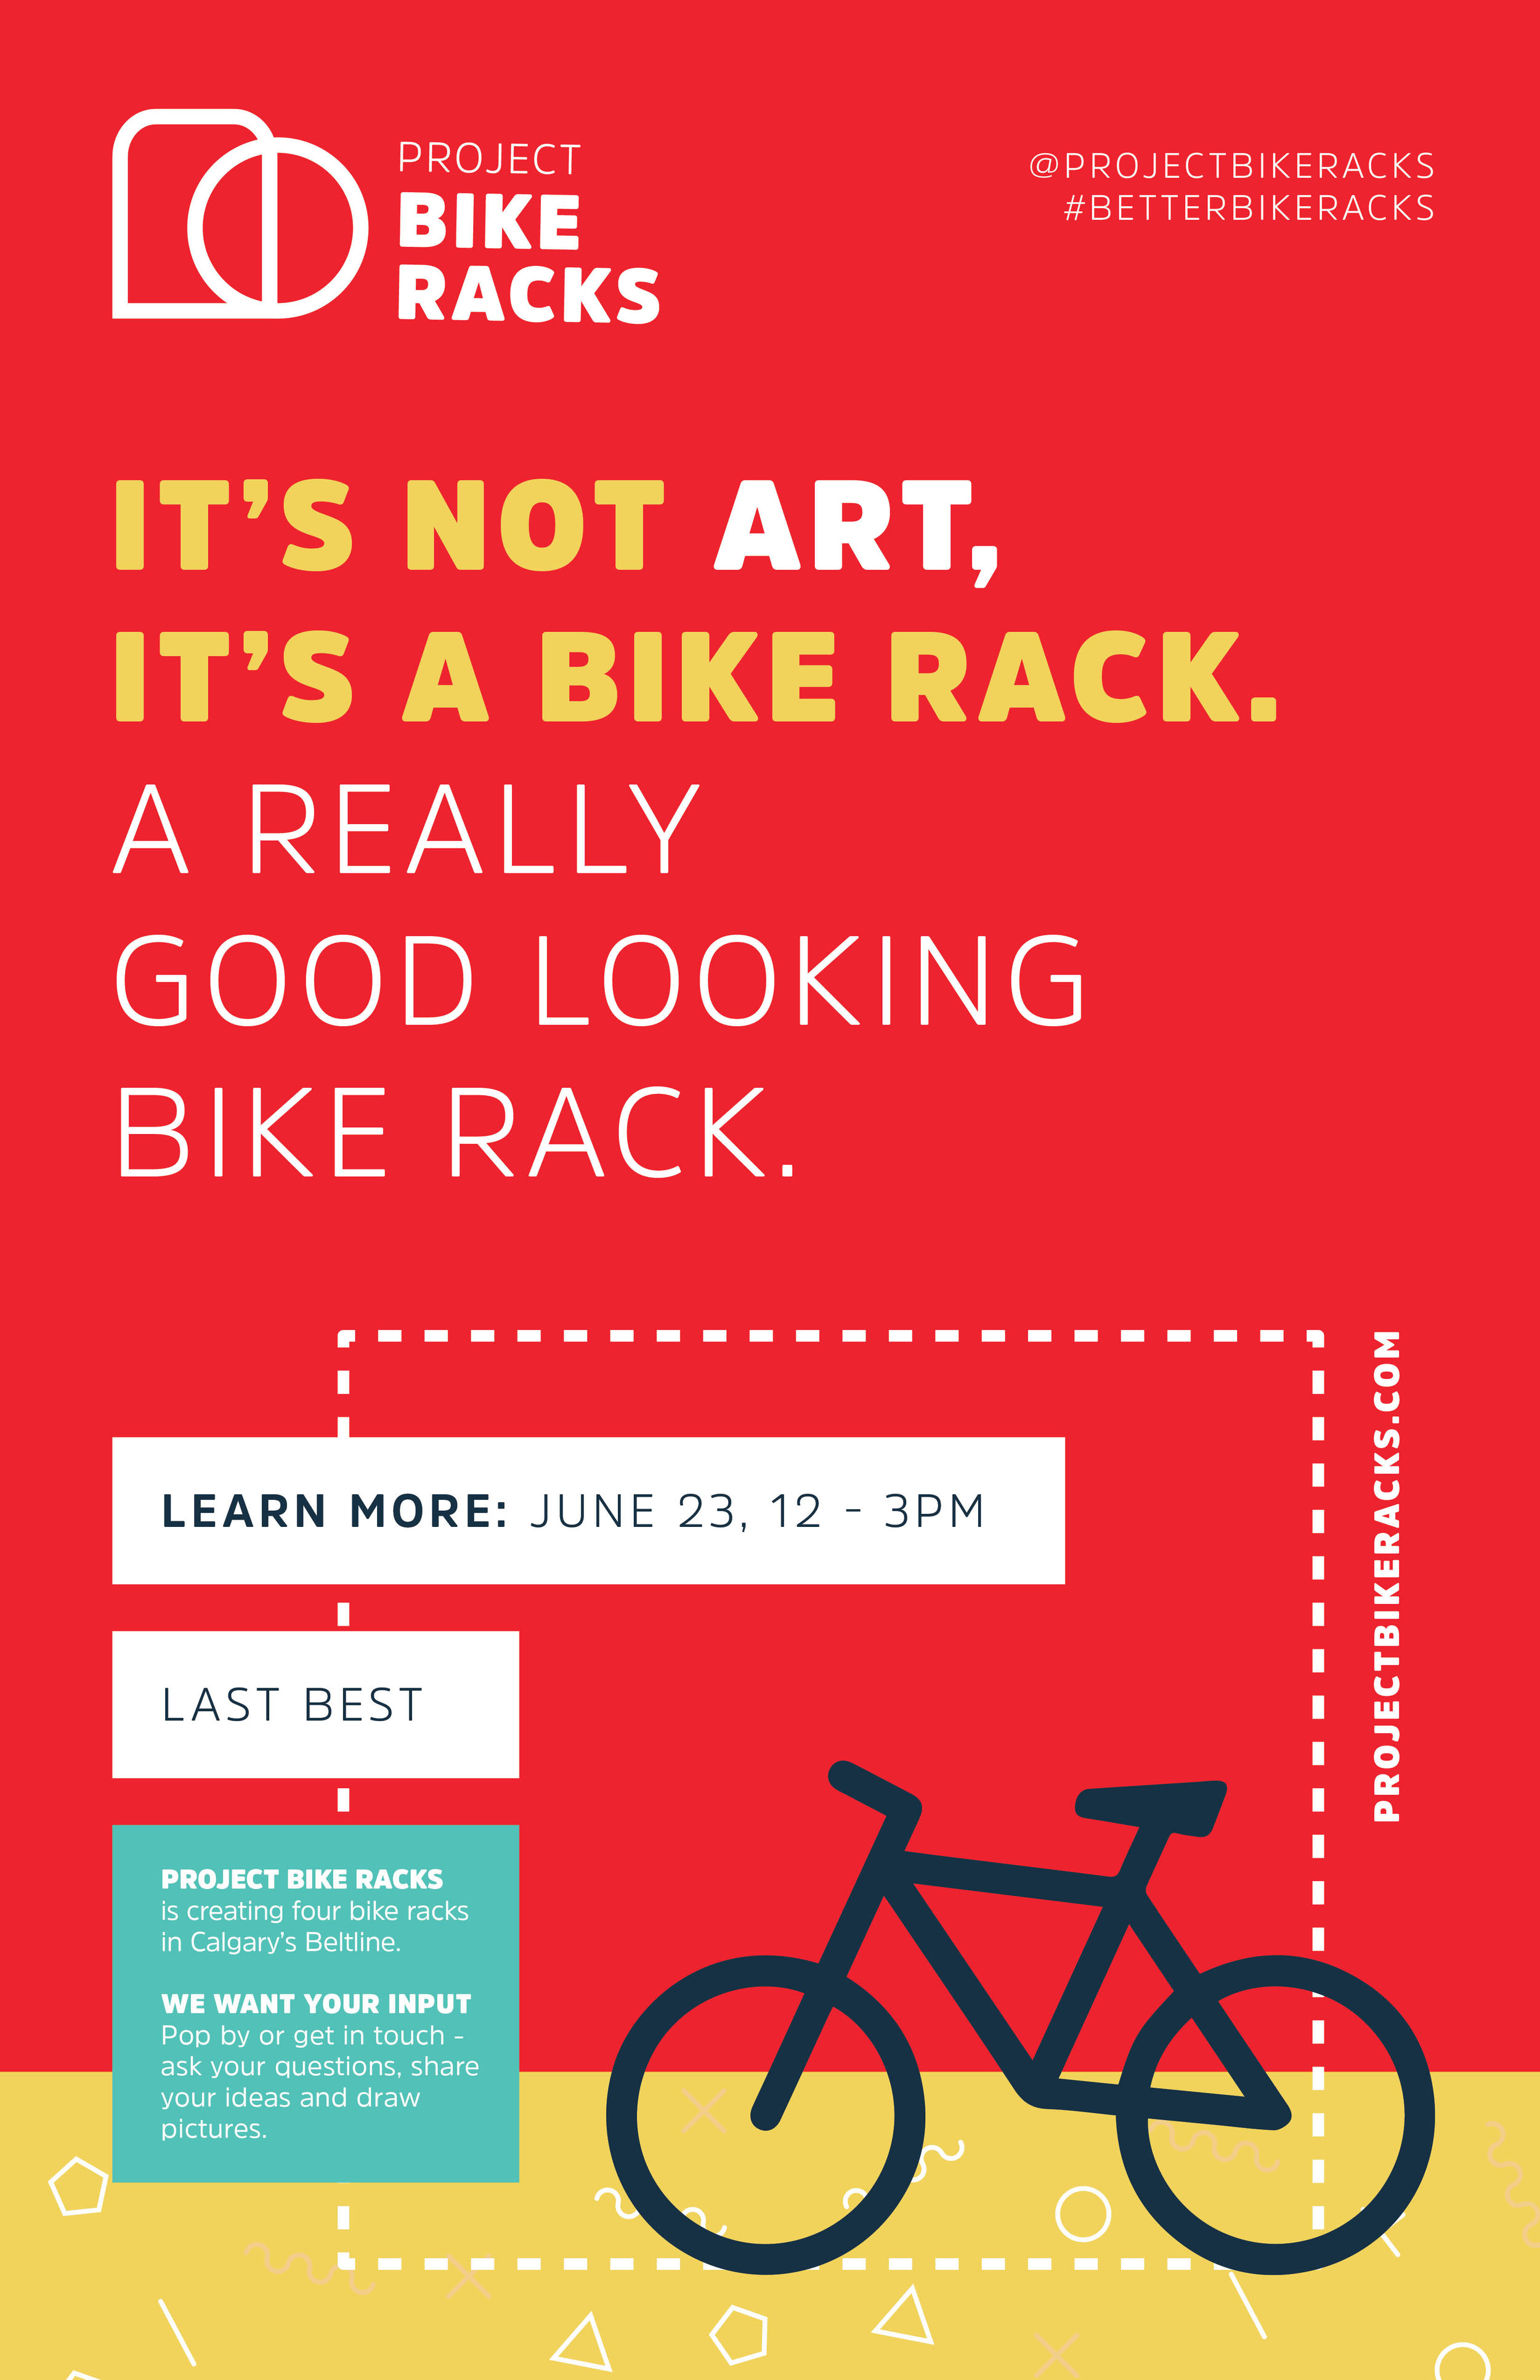 Project Bike Racks early poster design